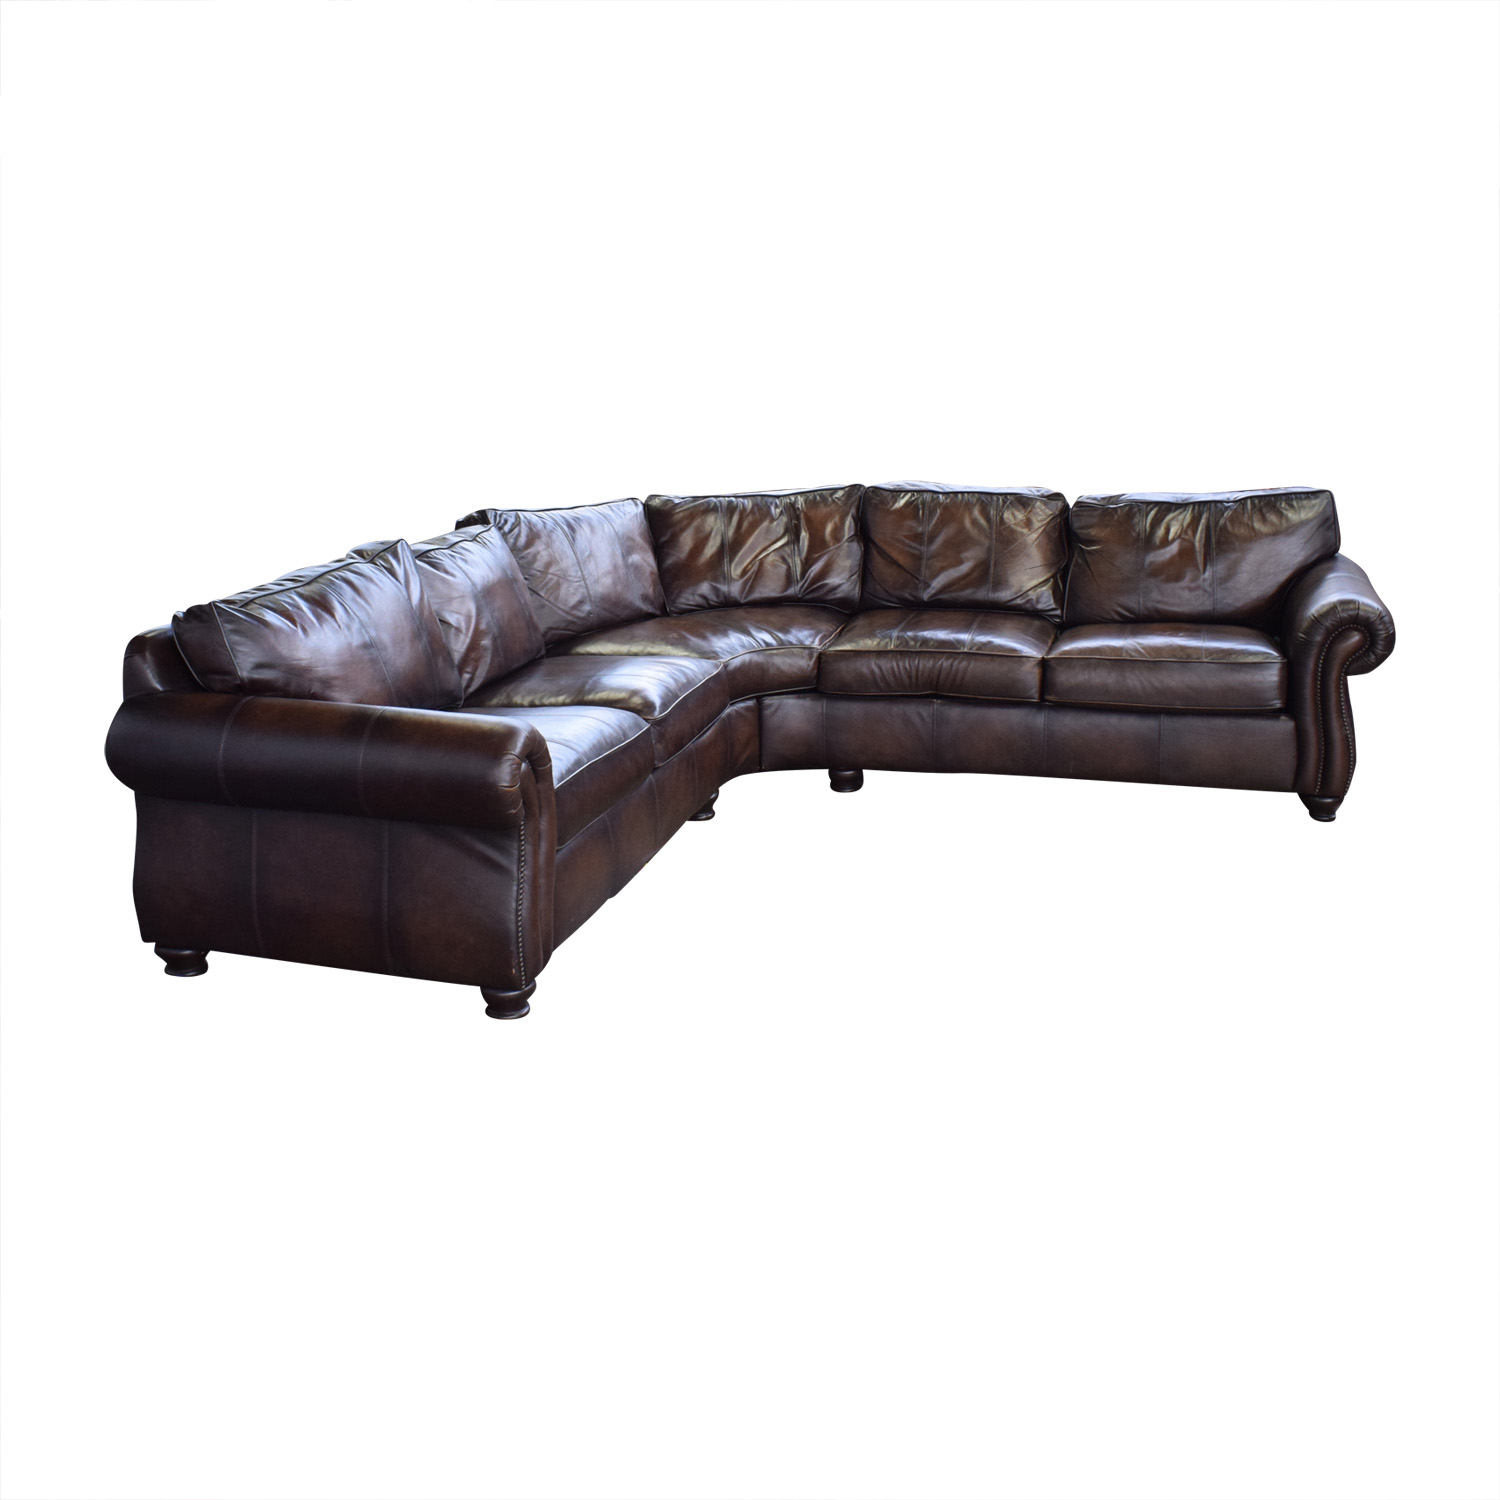 Bernhardt Bernhardt Brown Leather Sectional on sale